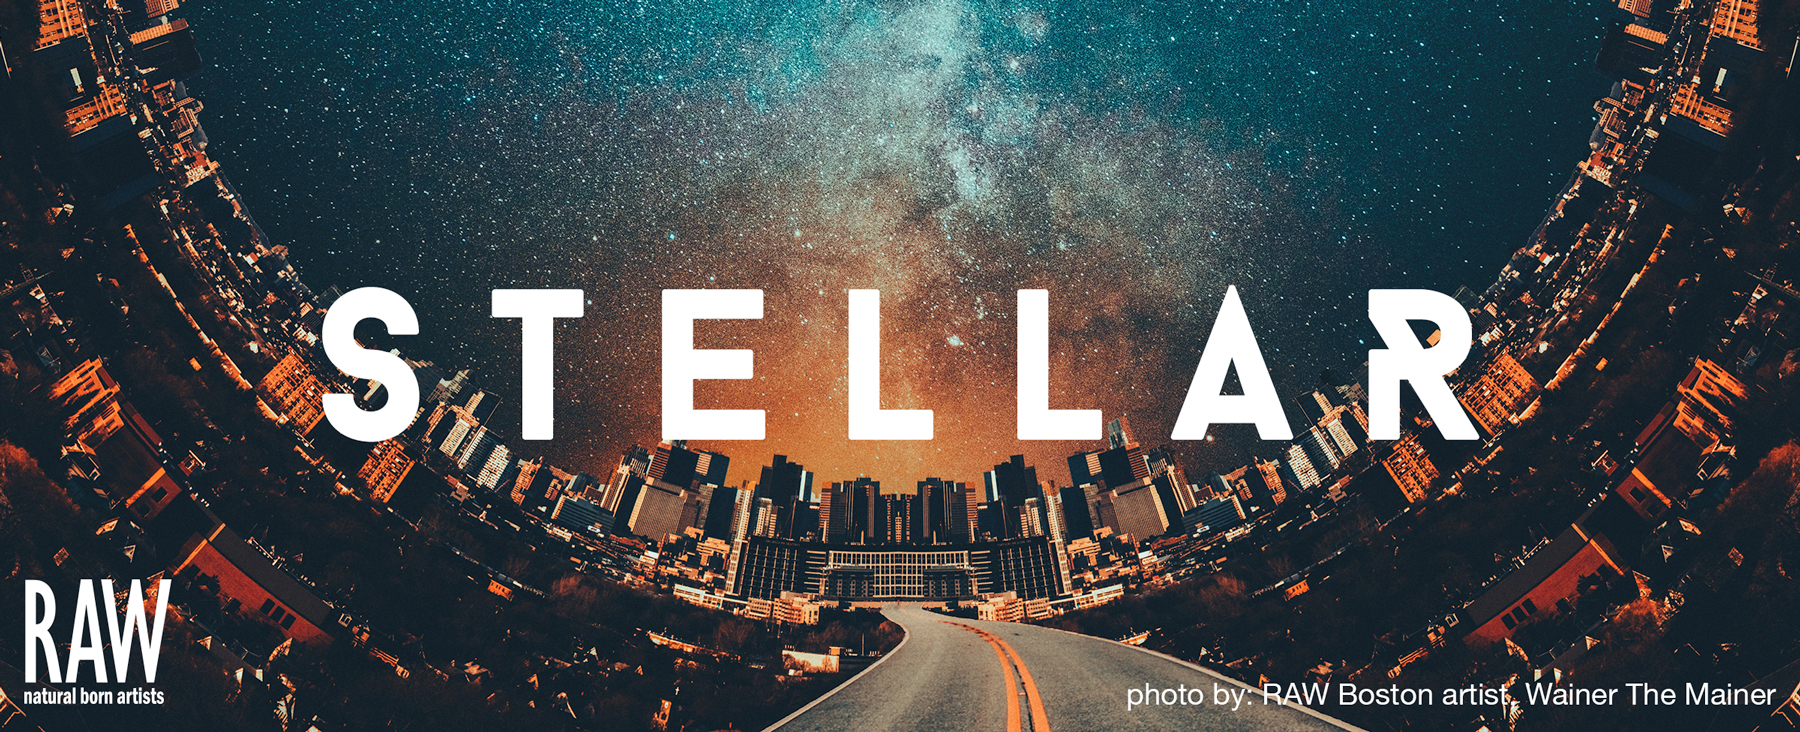 RAW New York City presents STELLAR